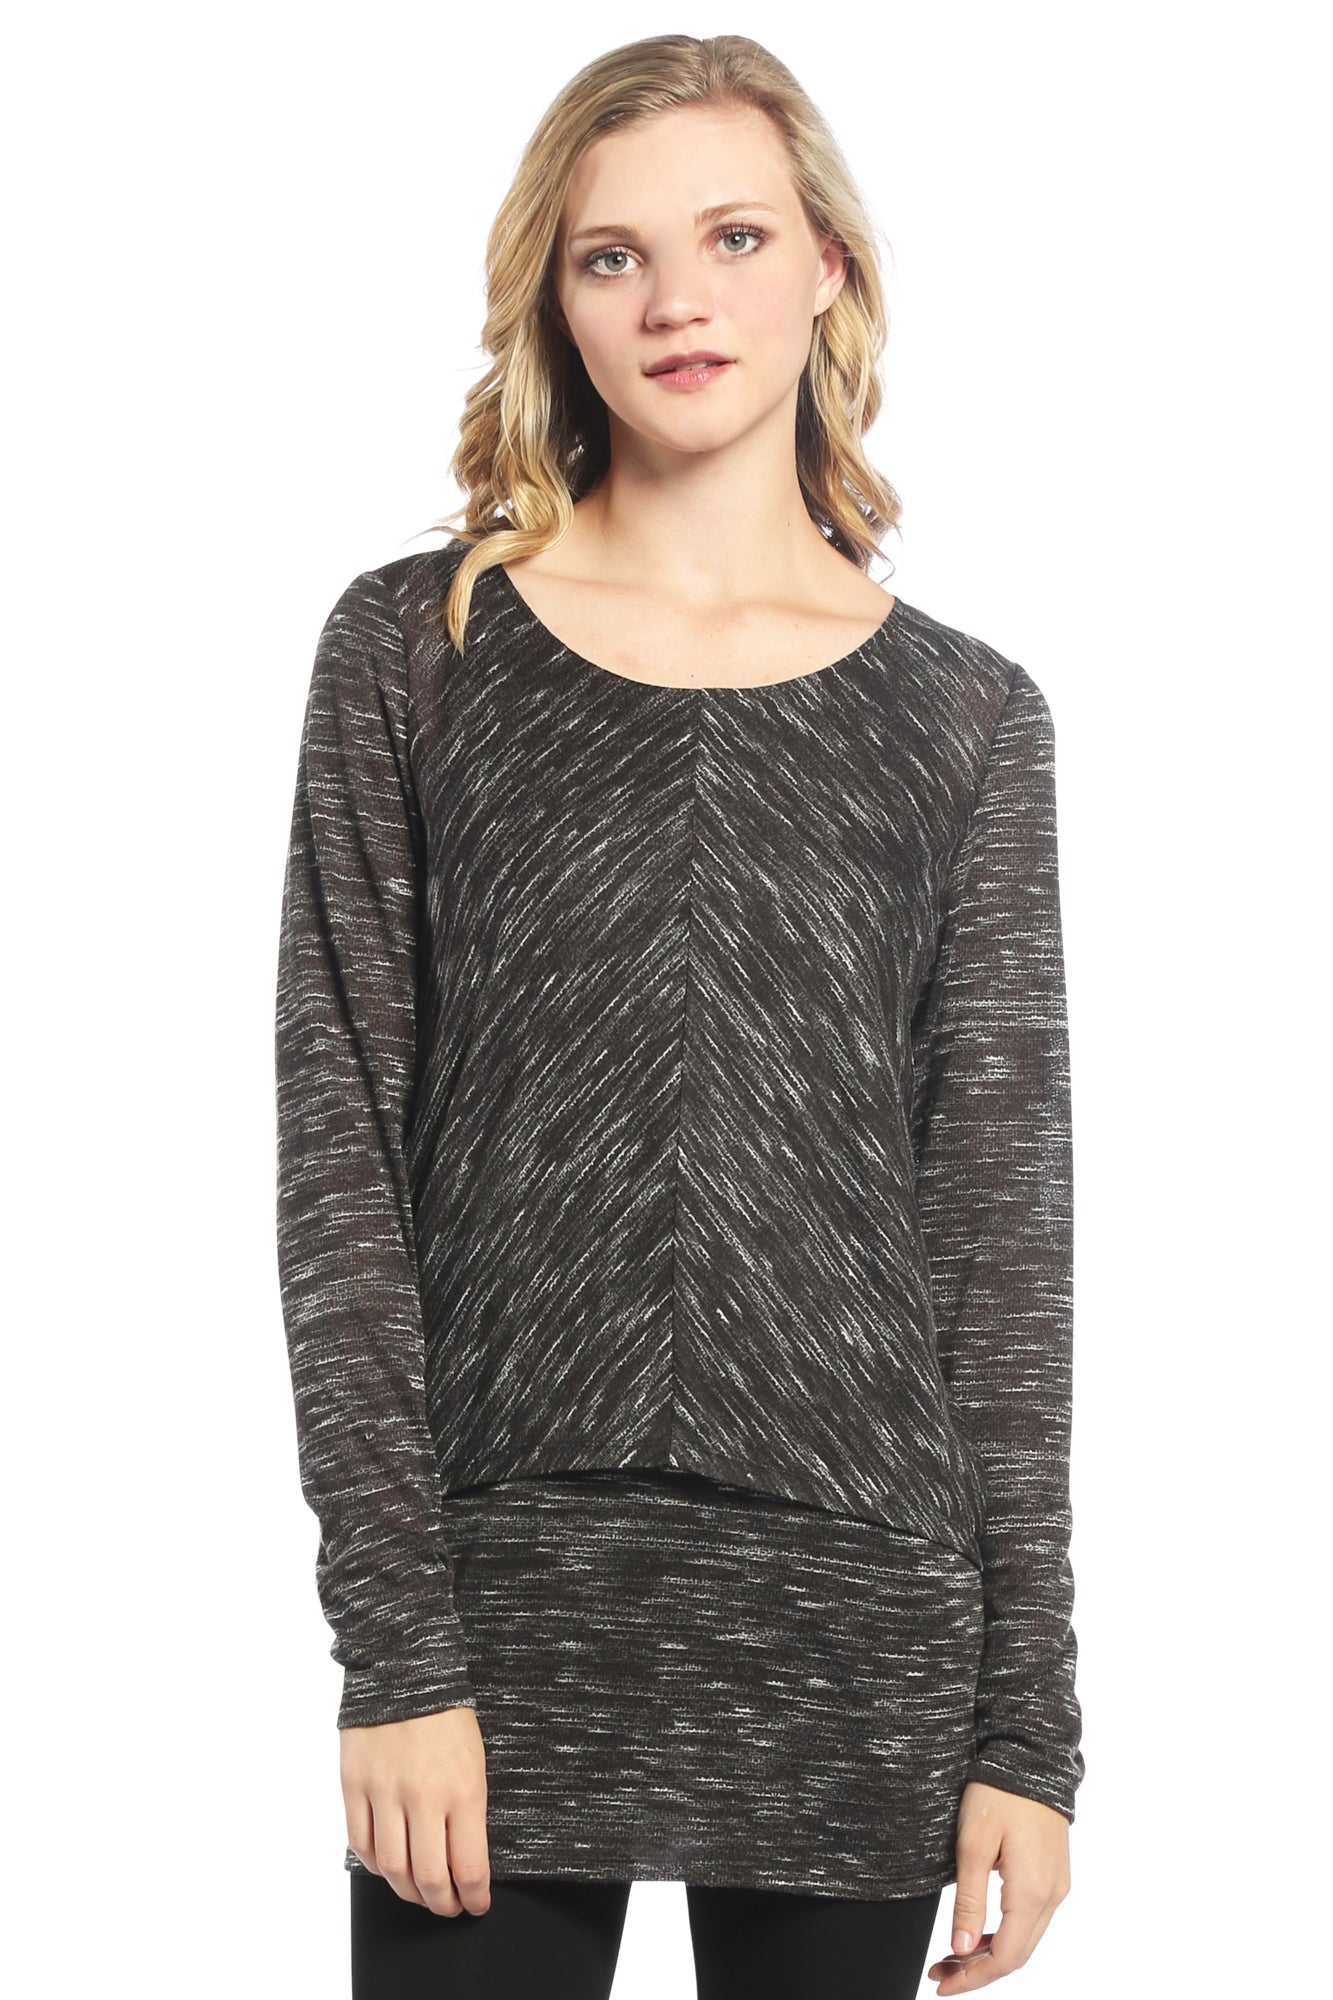 Double Layer Tunic with Slub Knit in Black